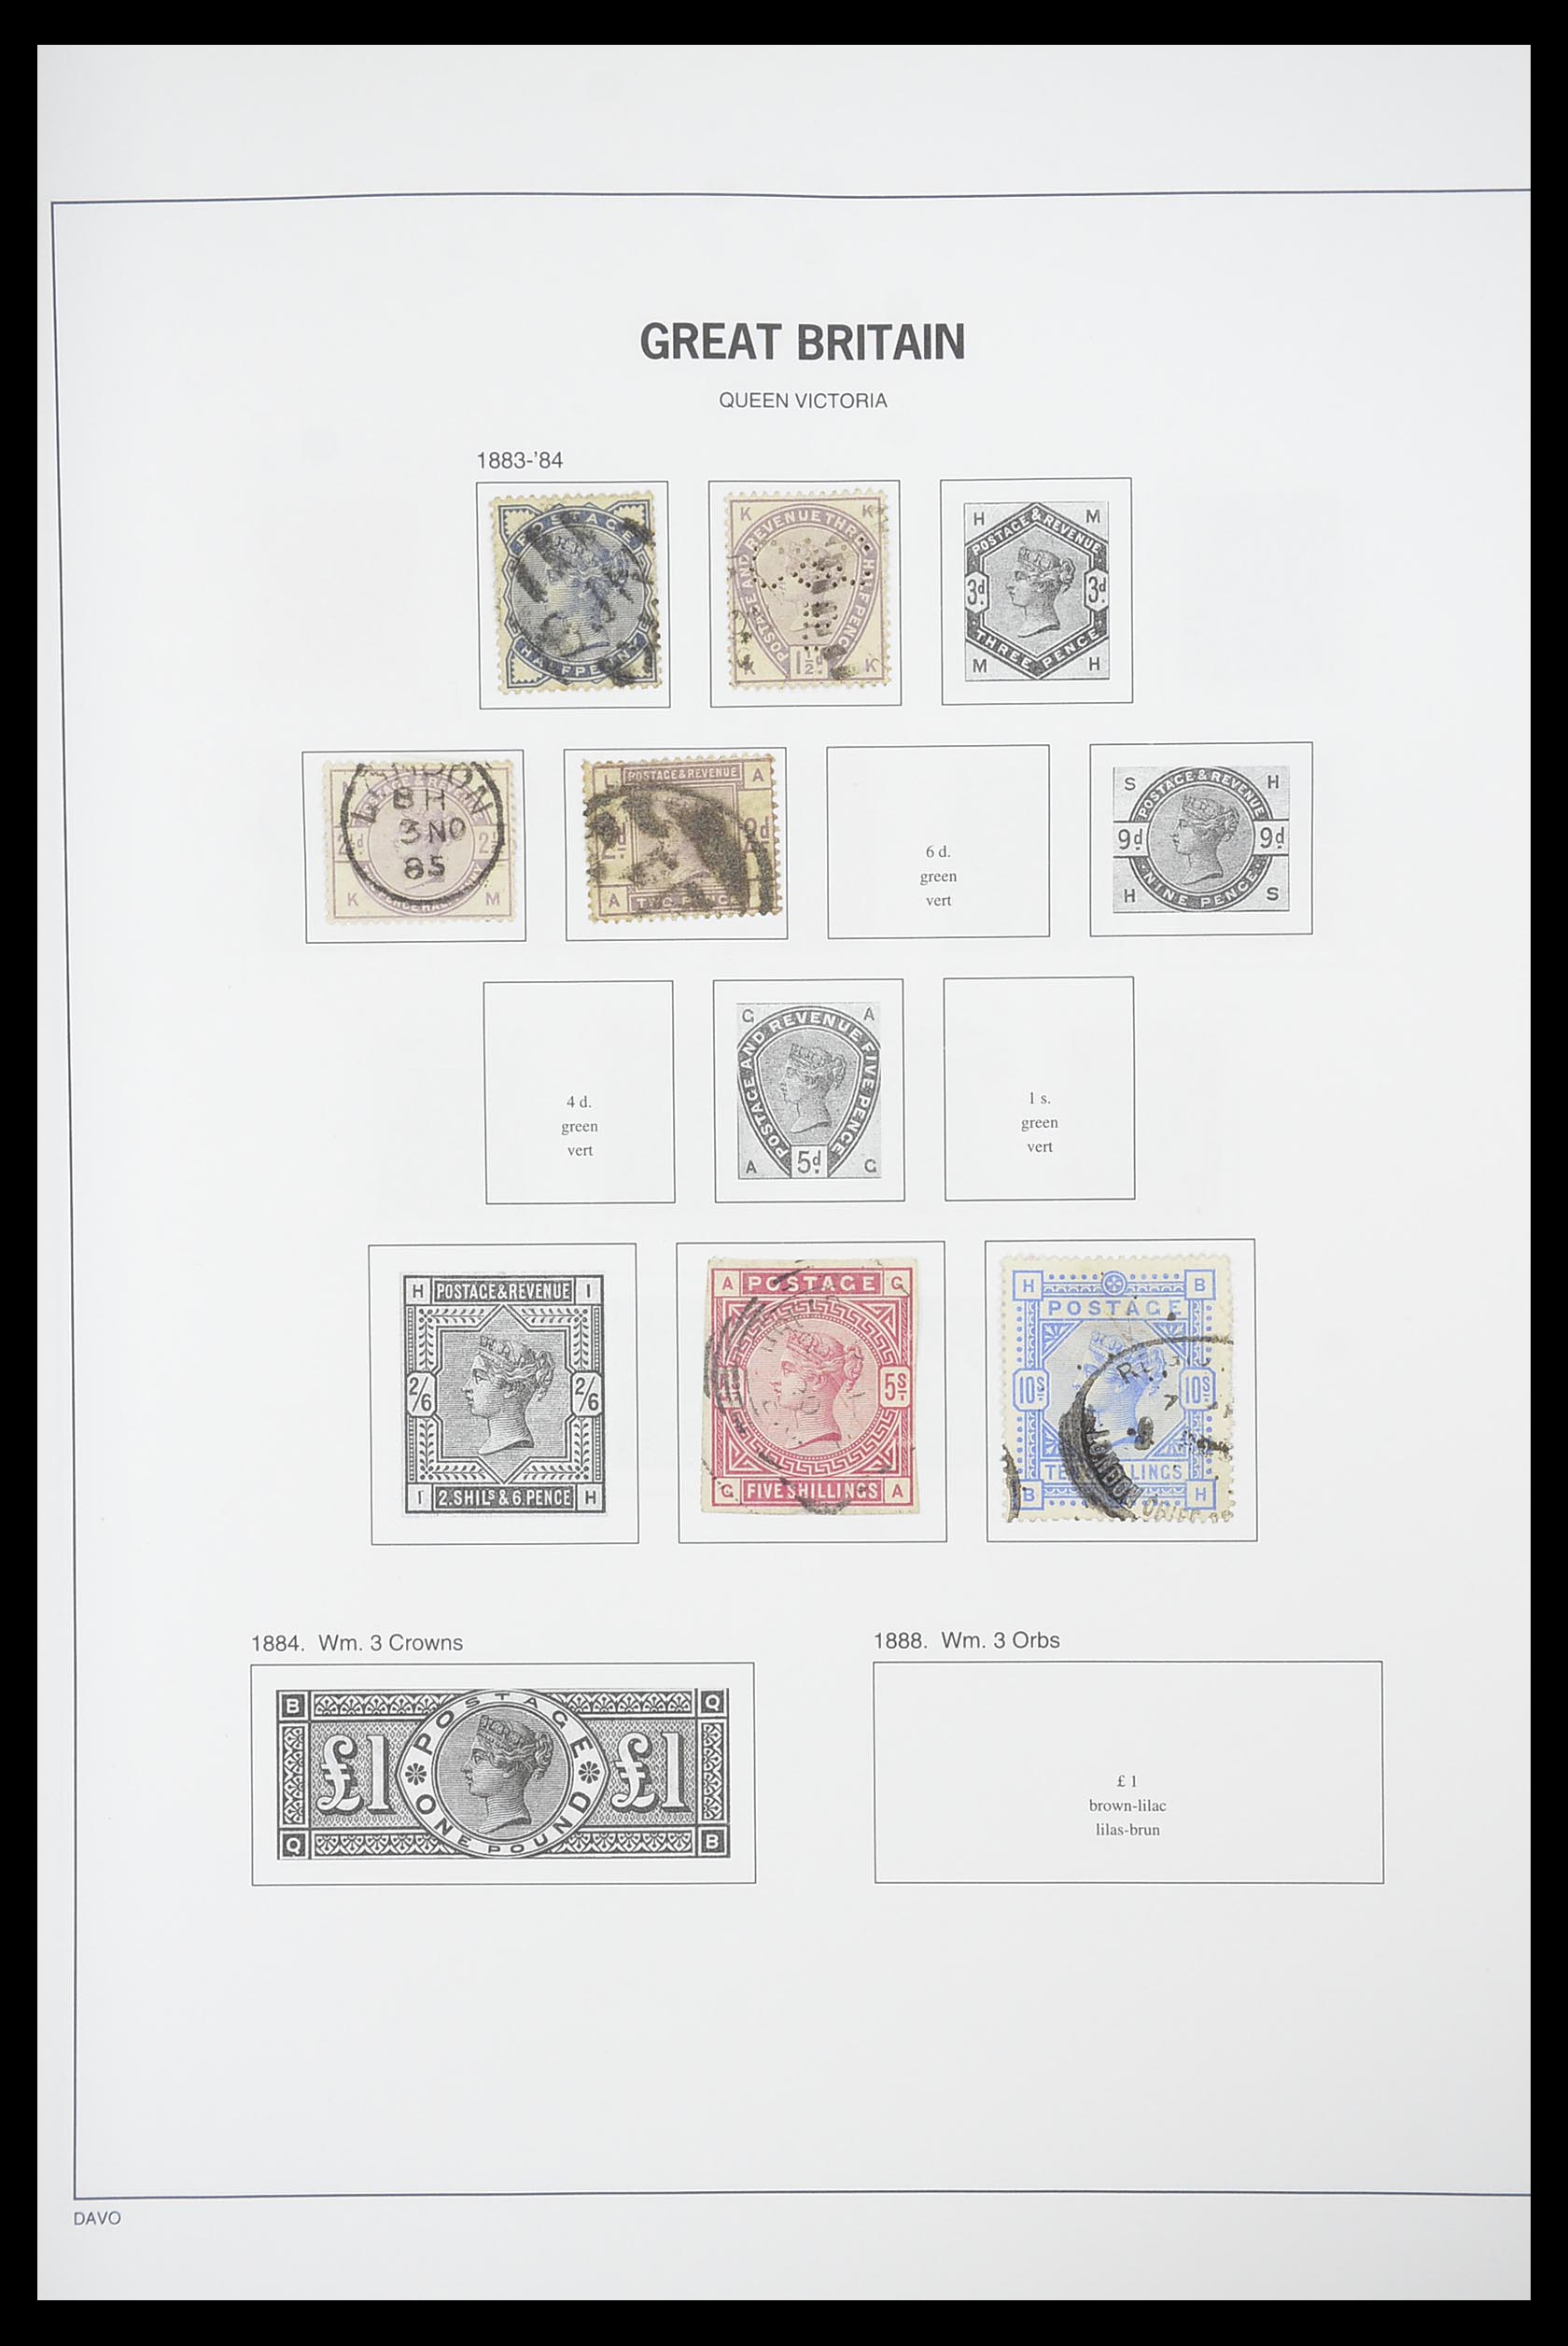 33898 005 - Stamp collection 33898 Great Britain 1840-2006.